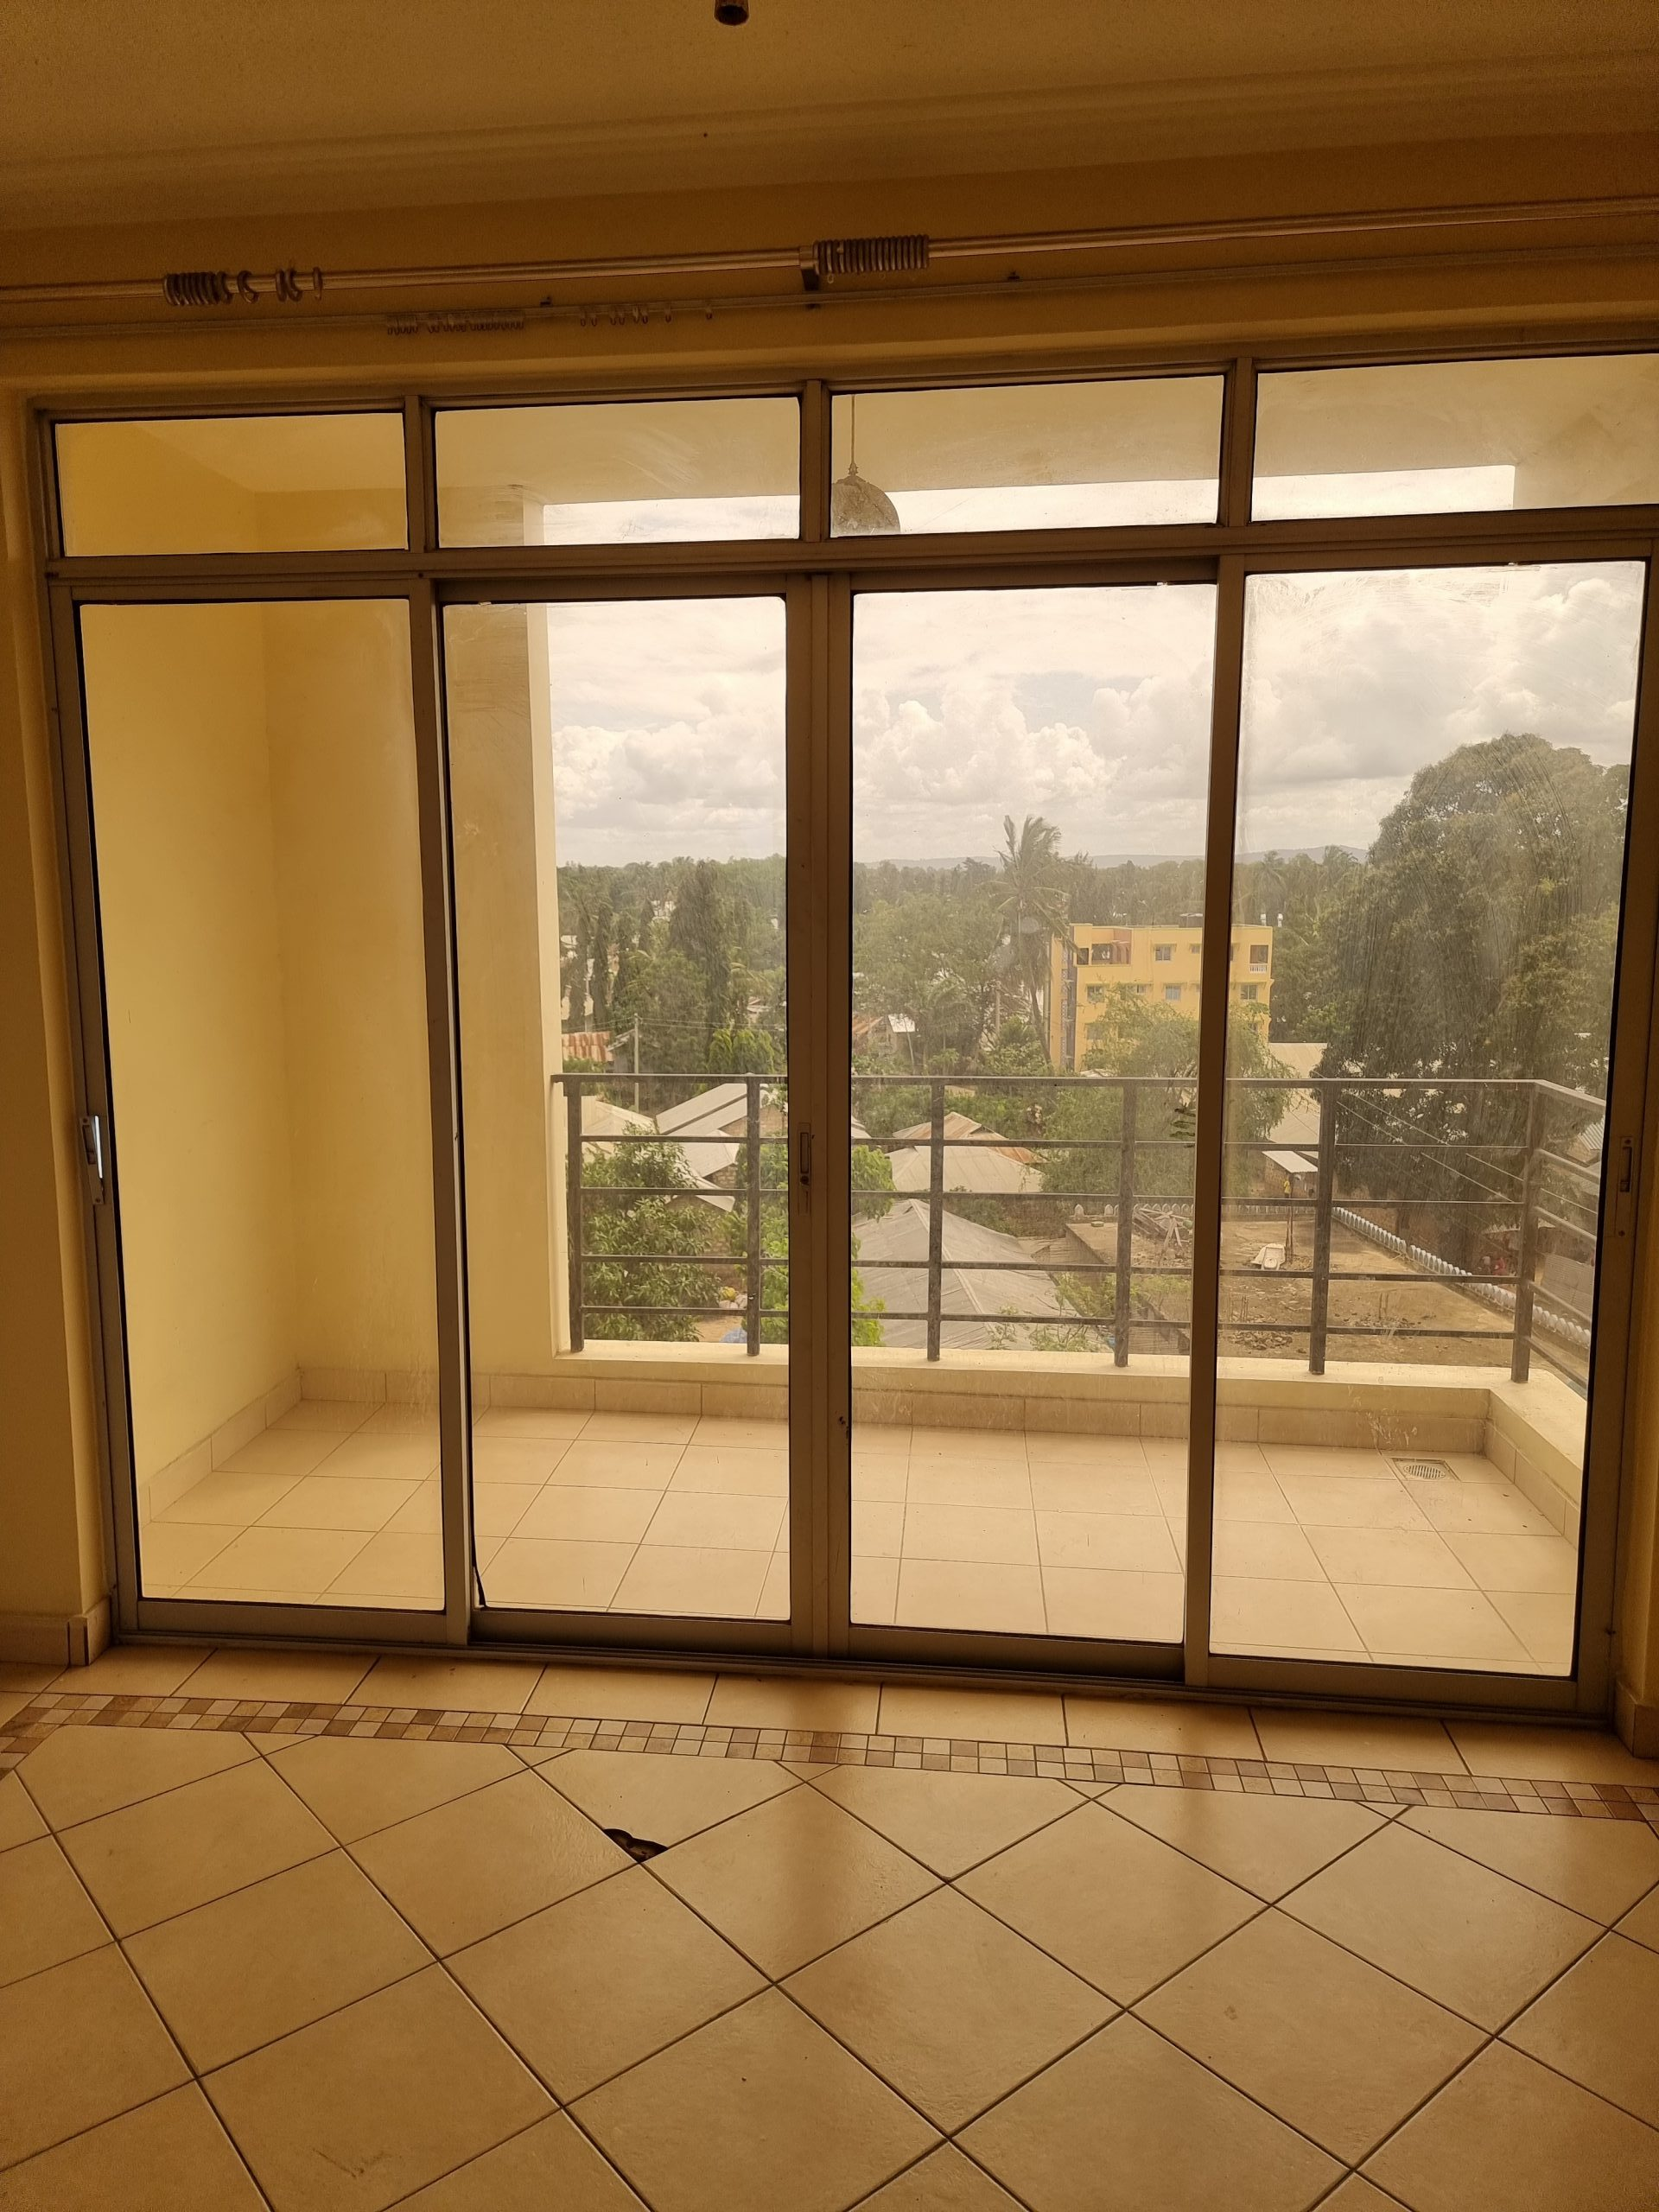 2 br apartment for rent in mtwapa